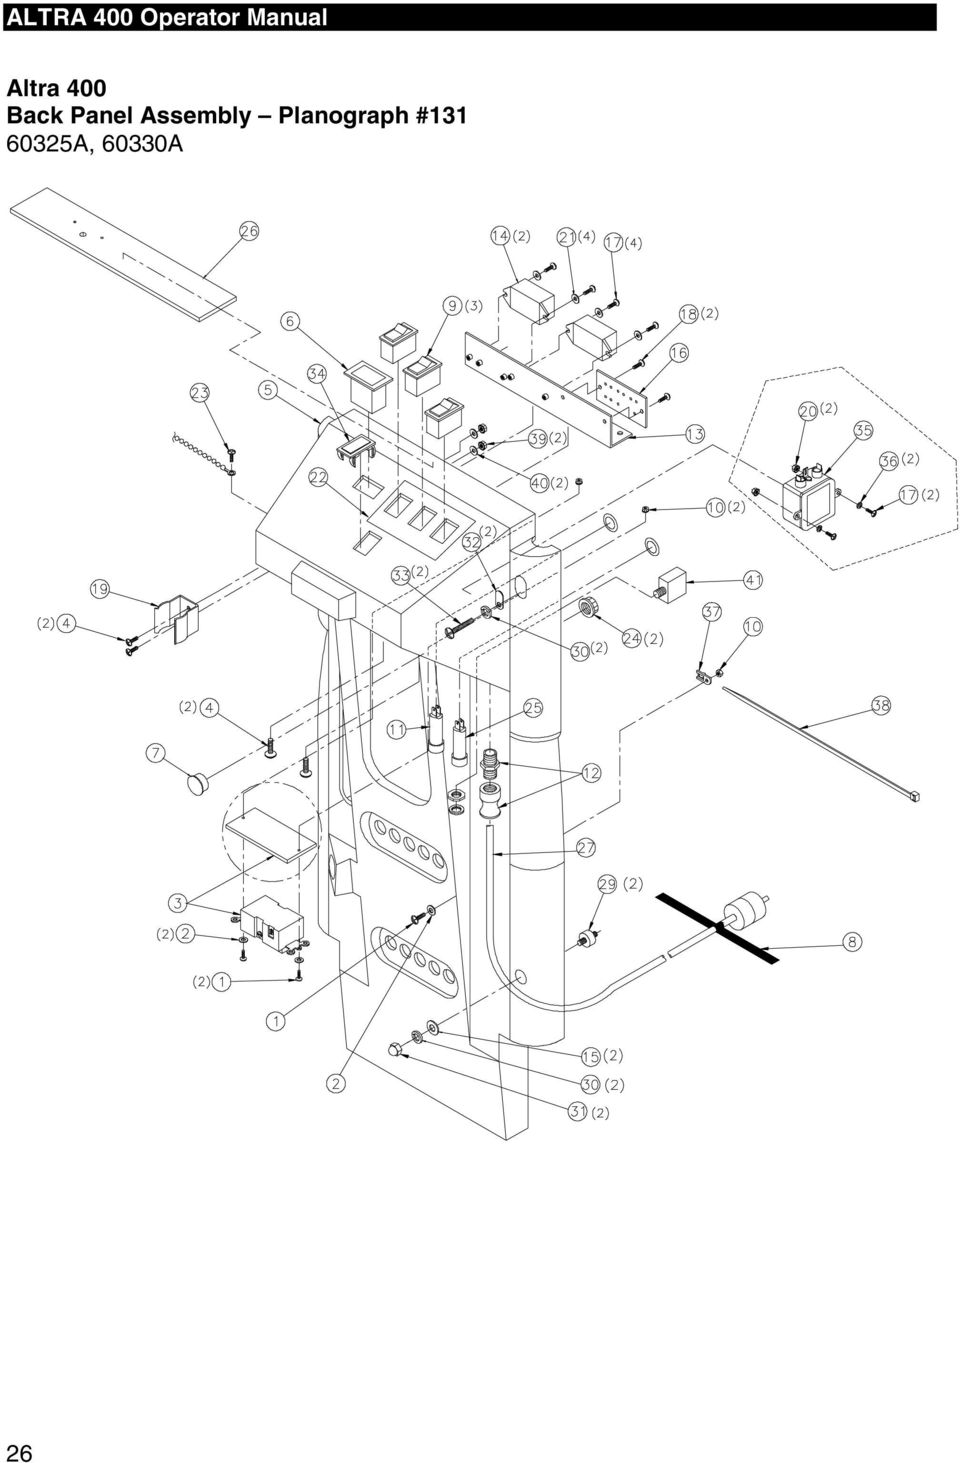 altra 400 operator manual  planographs and wiring diagrams